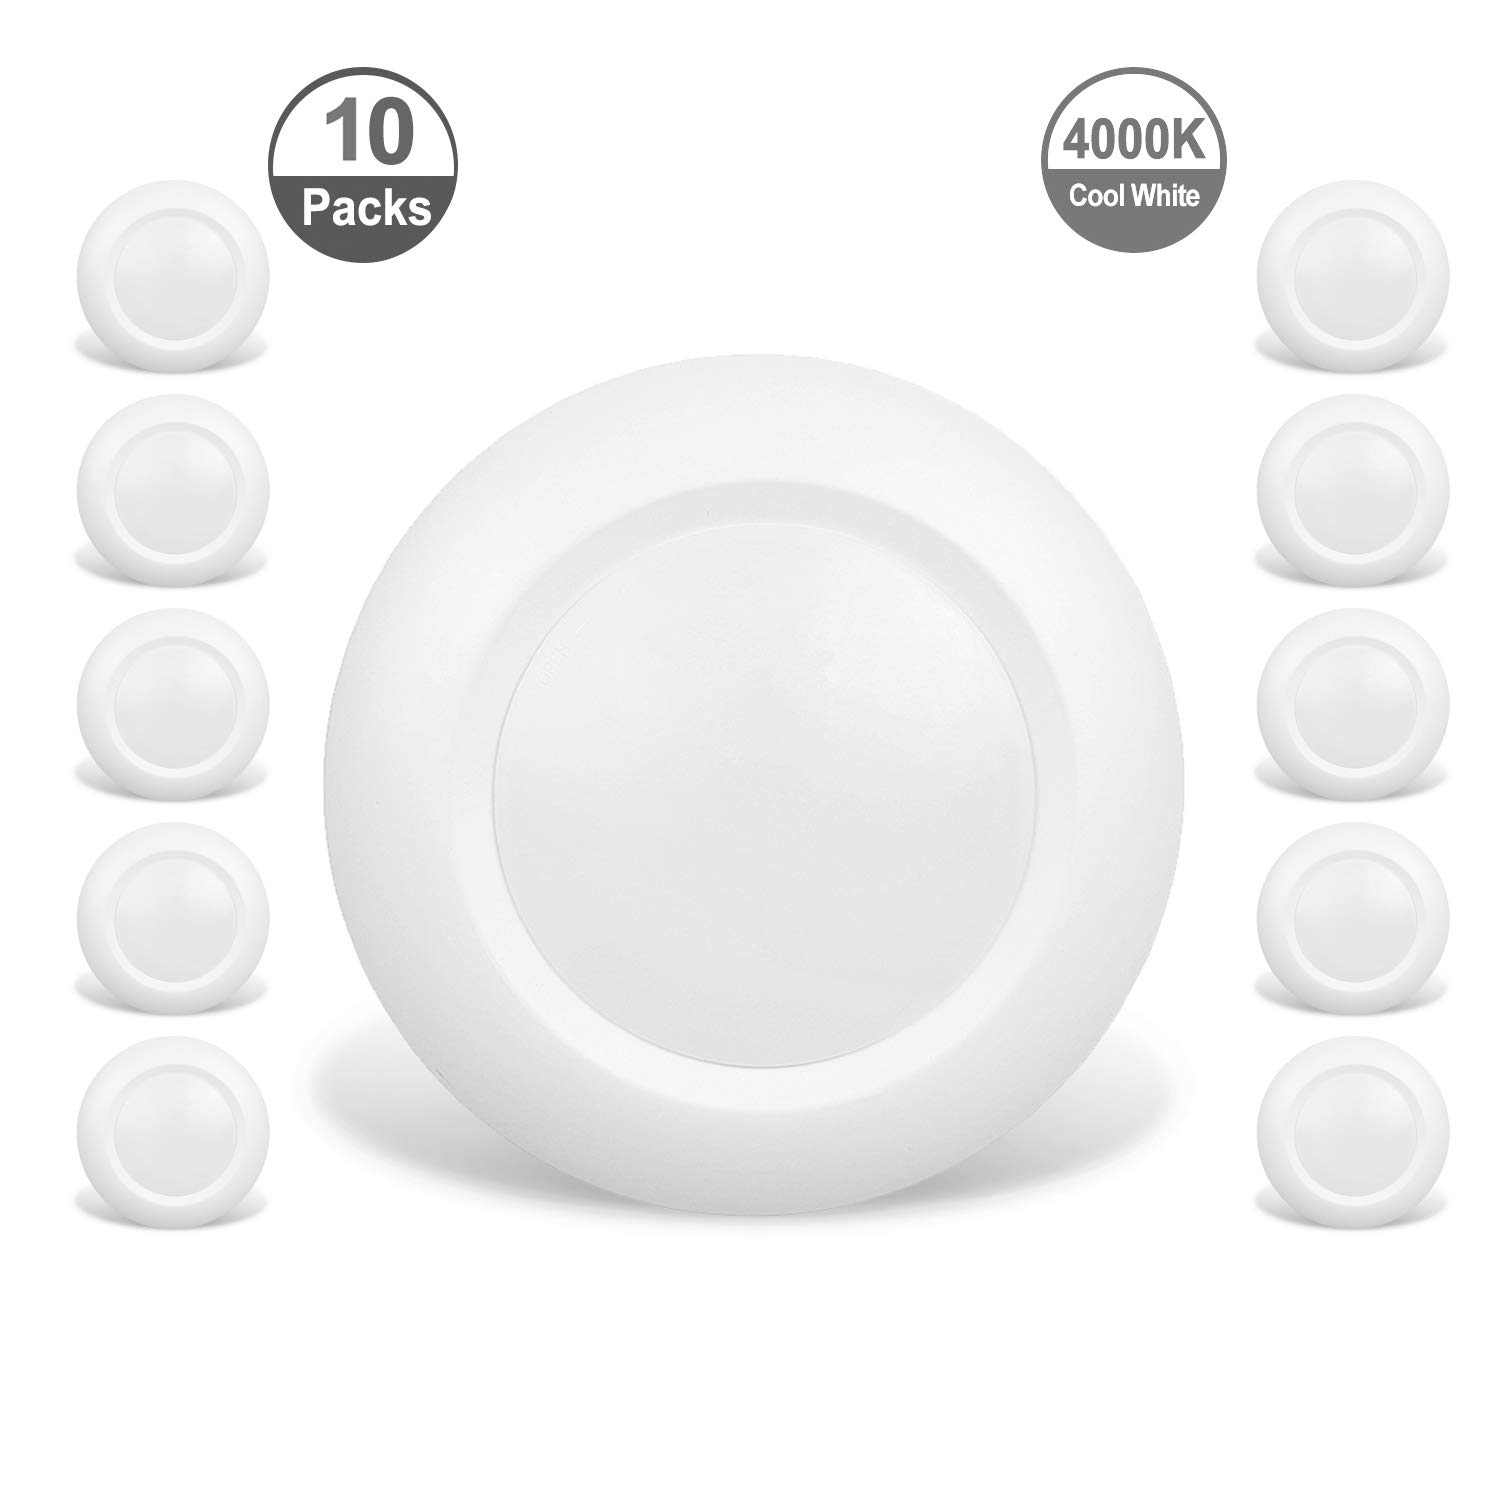 JULLISON 10 Packs 4 Inch LED Low Profile Recessed & Surface Mount Disk Light, Round, 10W, 600 Lumens, 4000K Cool White, CRI80, DOB Design, Dimmable, Energy Star, ETL Listed, White